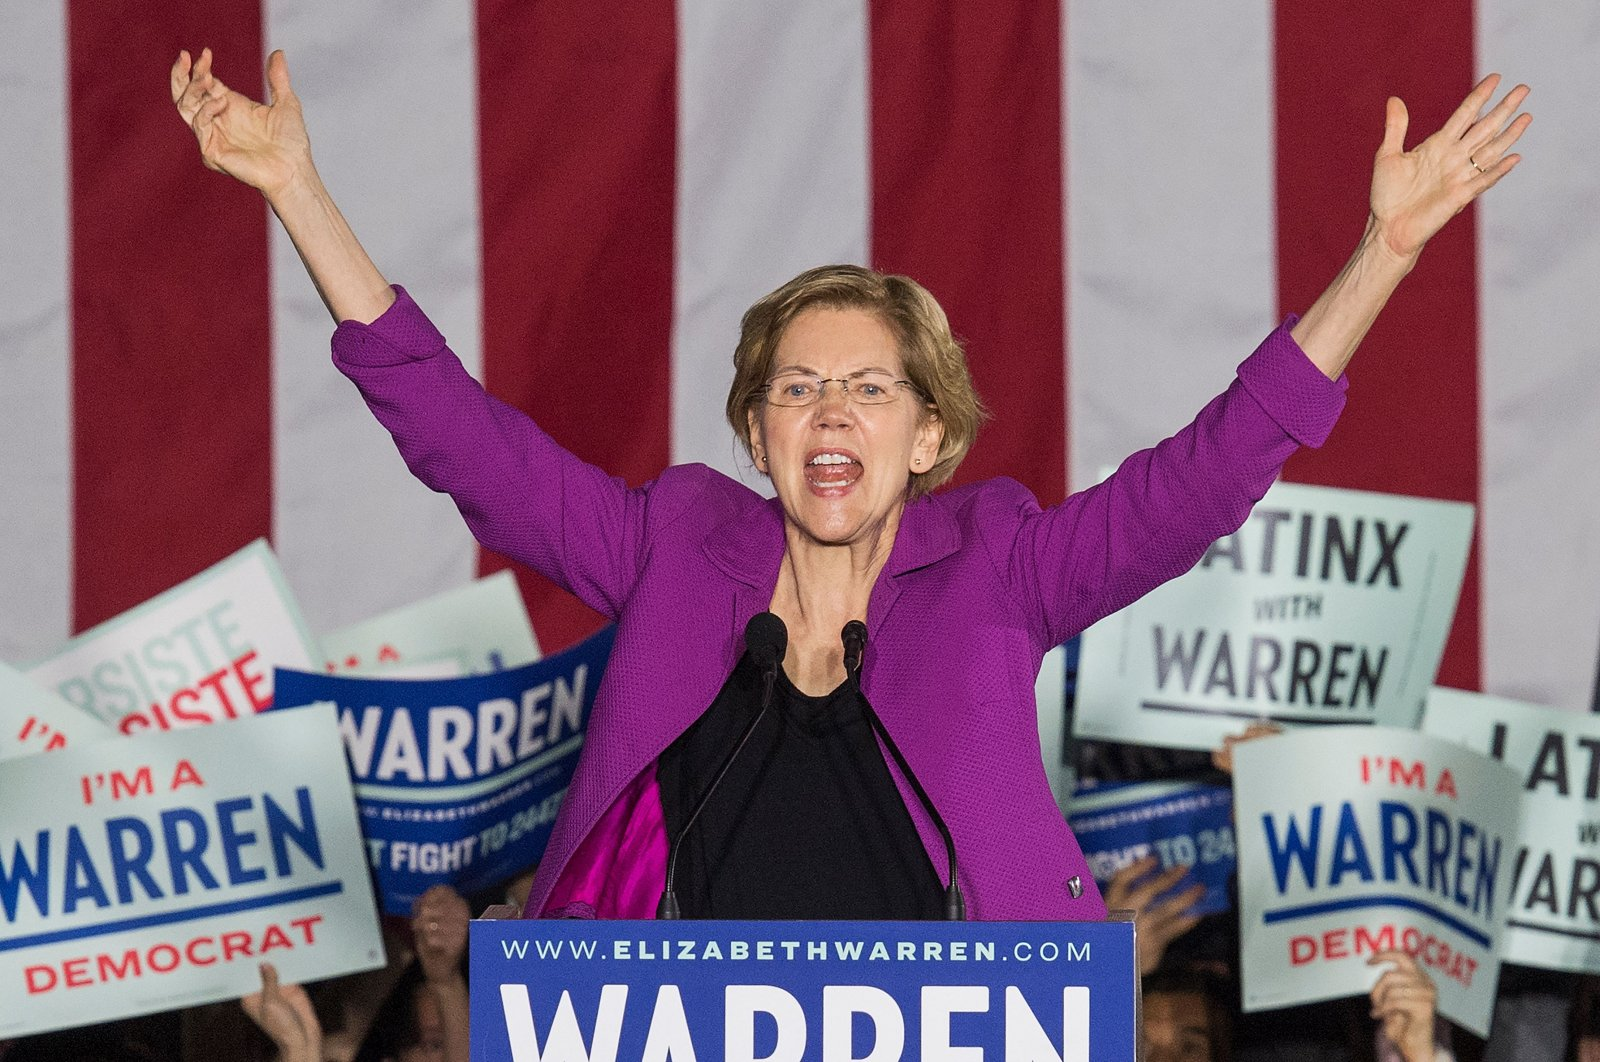 Democratic White House hopeful Massachusetts Senator Elizabeth Warren speaks to her supporters during a campaign rally on the eve of the California Democratic Primary in Monterey Park, east of Los Angeles, C.A., March 2, 2020. (AFP Photo)